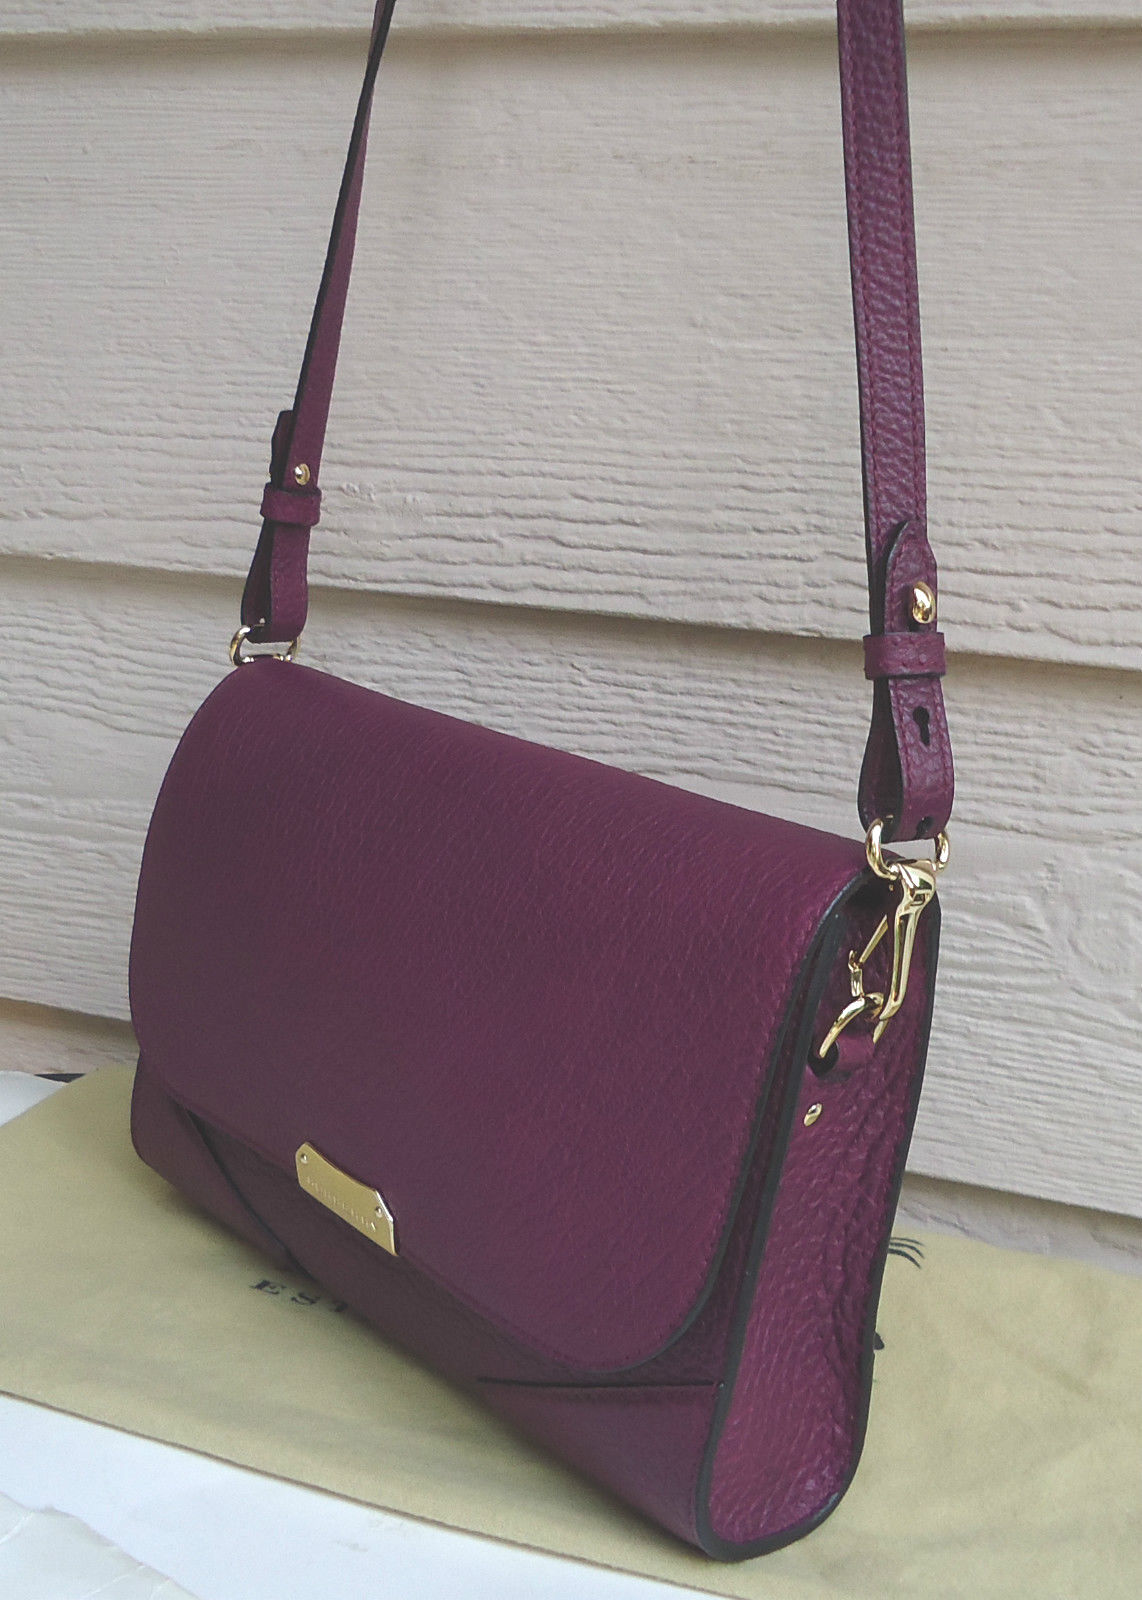 9c87830bd066 Burberry Small Abbott Leather Crossbody Clutch Damson Magenta Purple for  sale online